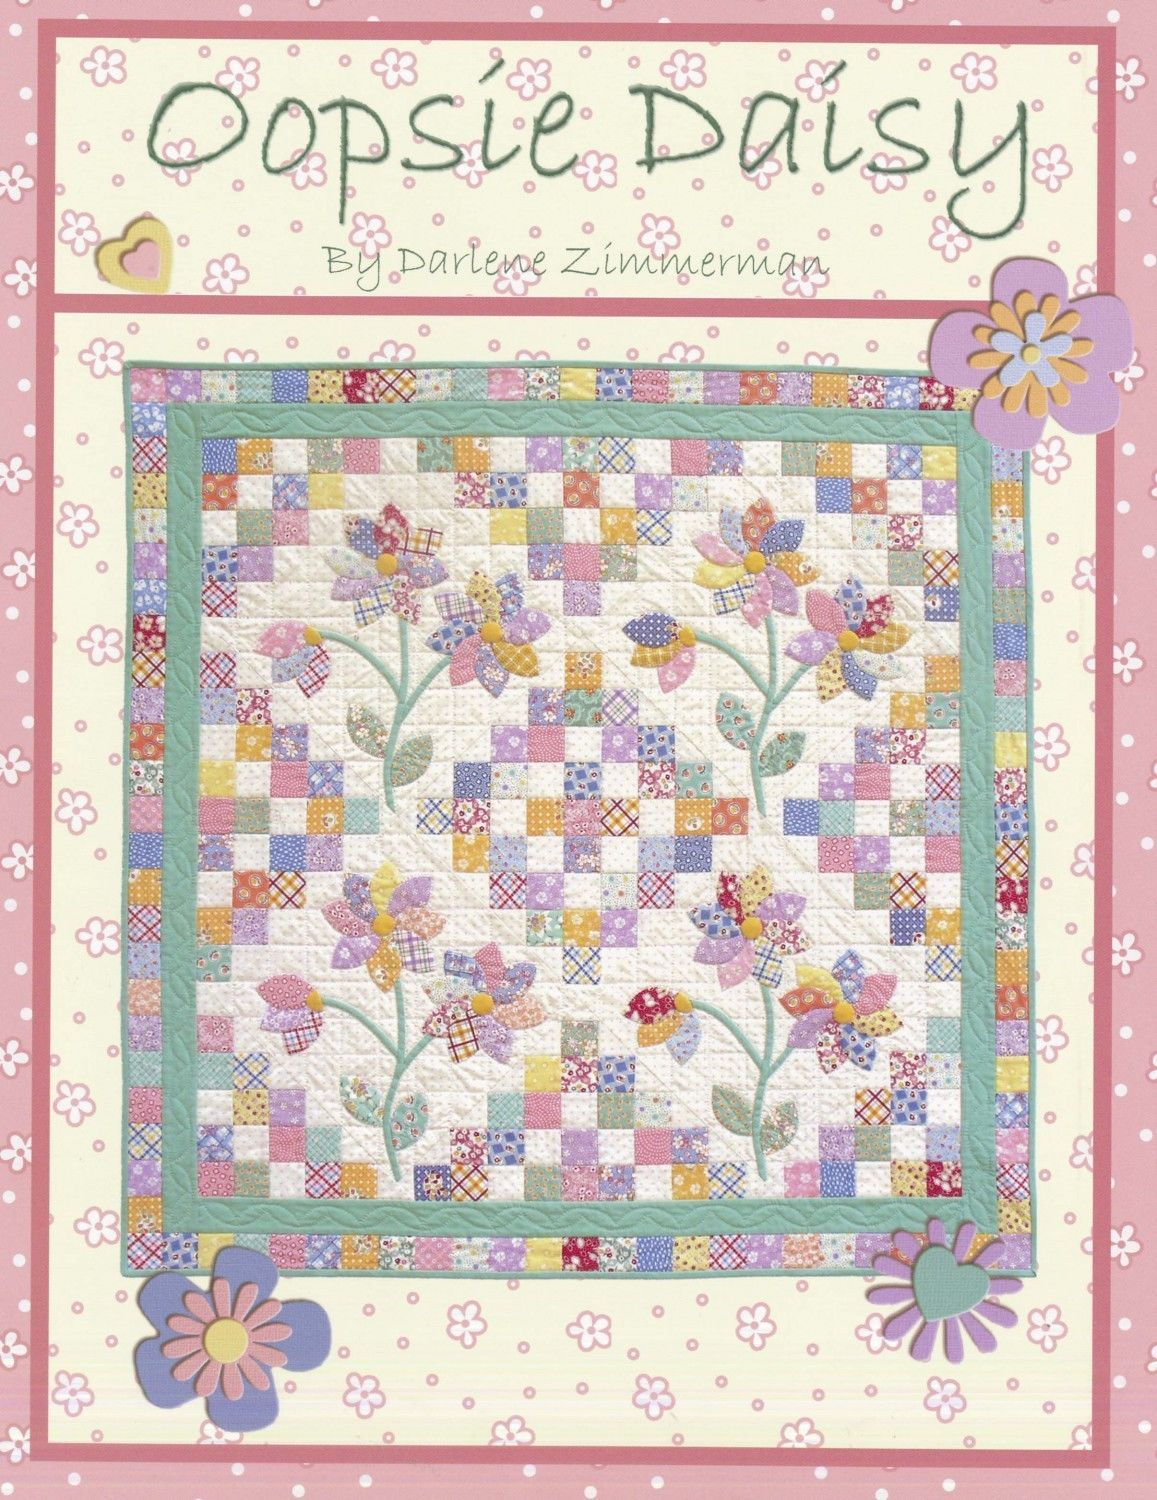 Oopsie daisy quilt pattern from needlings inc new u cad